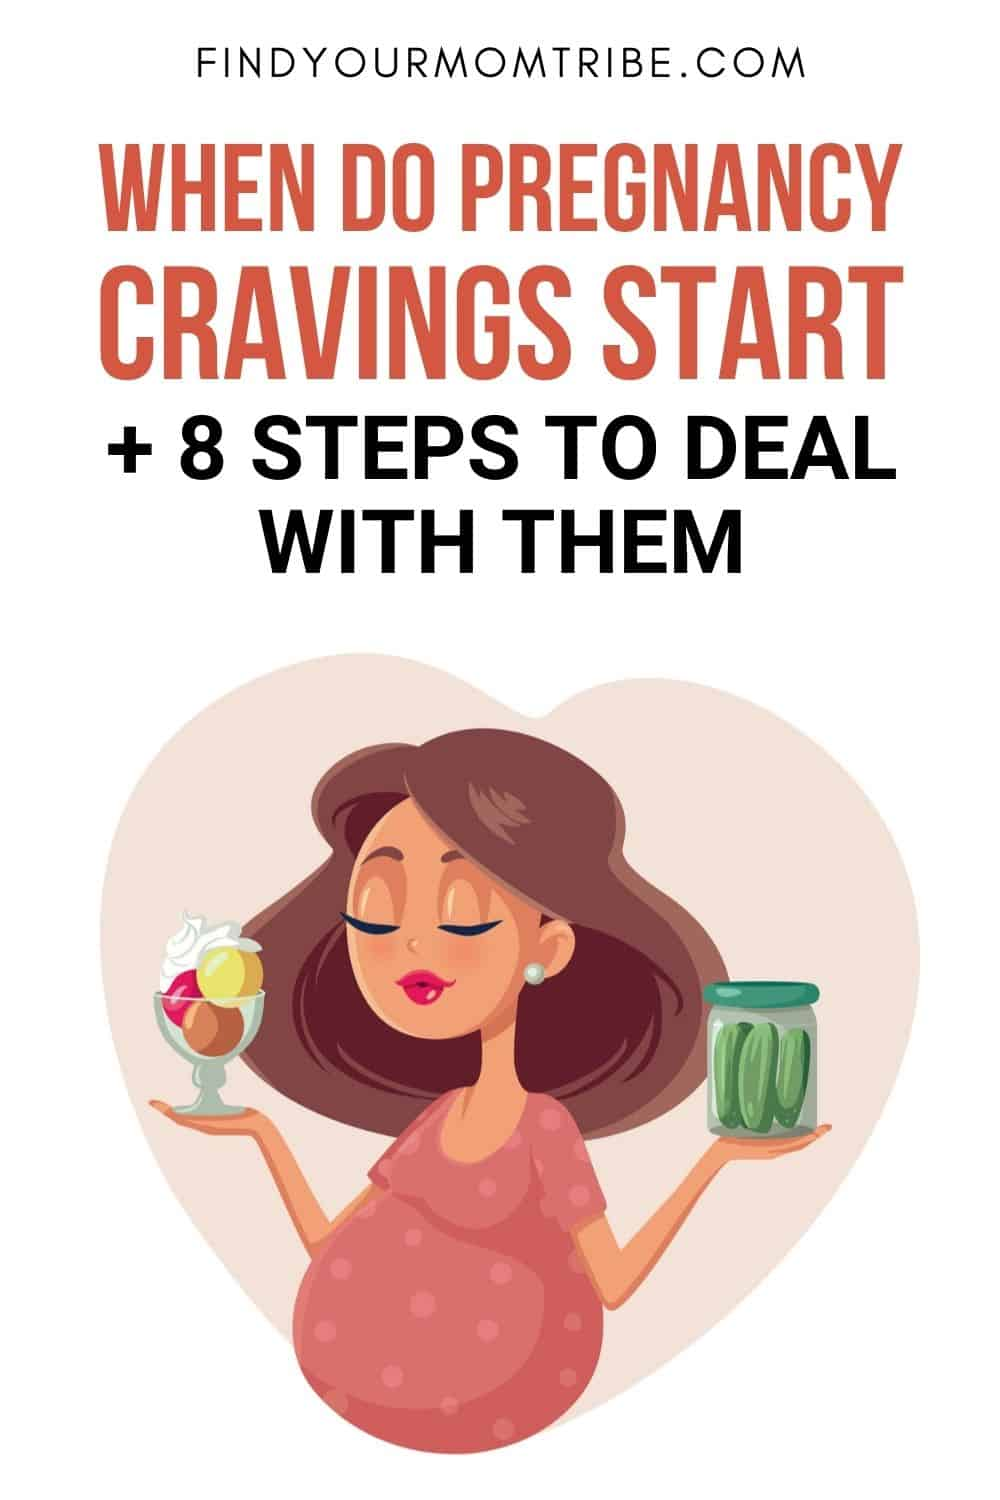 When Do Pregnancy Cravings Start And 8 Steps To Deal With Them